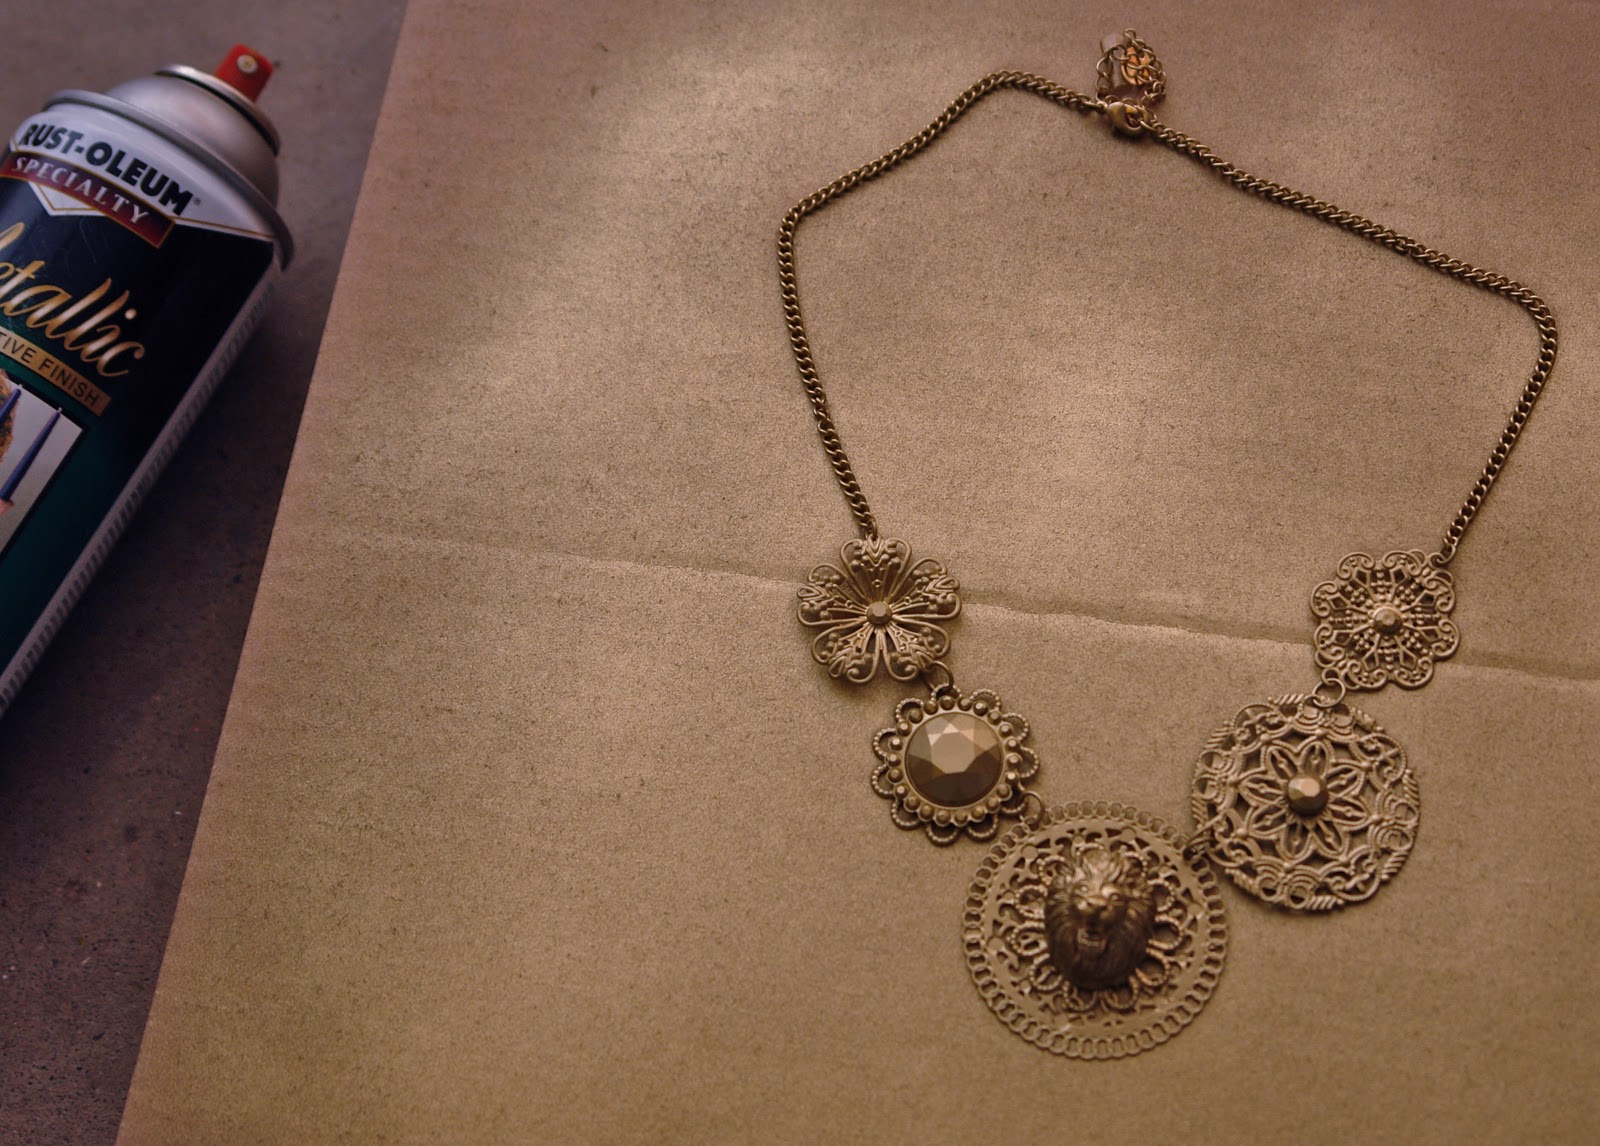 how to tell if a necklace is gold